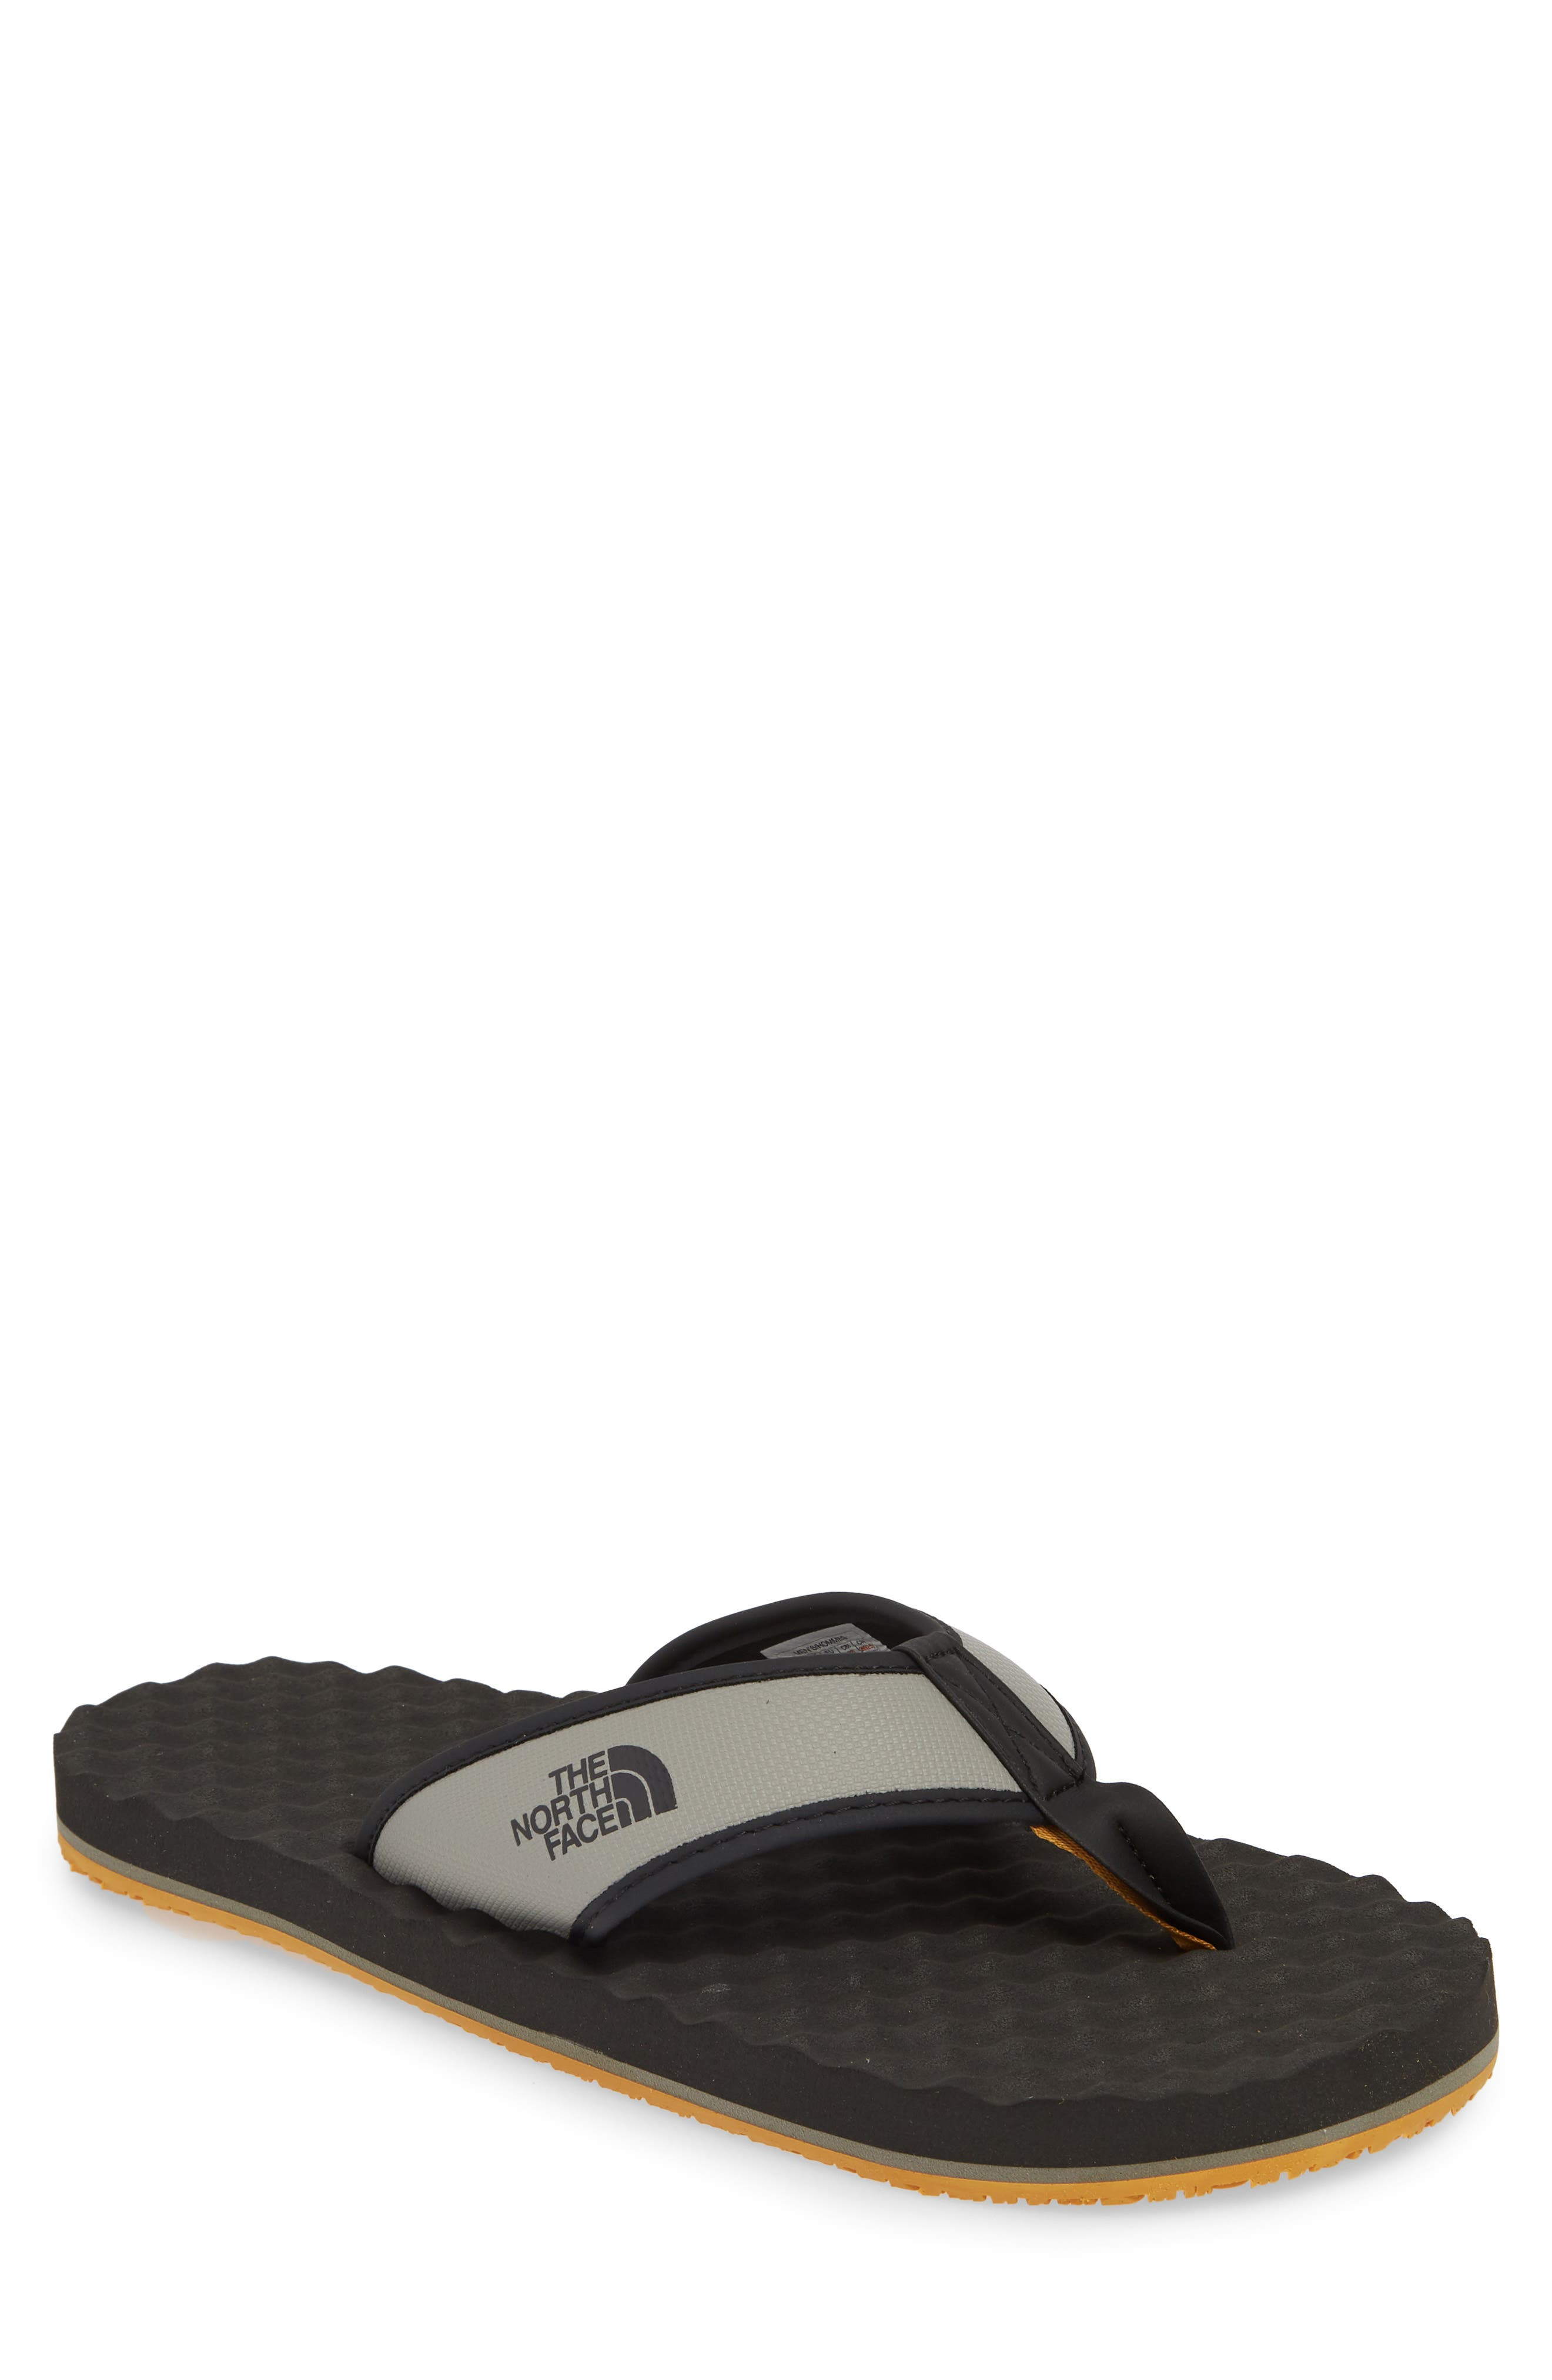 THE NORTH FACE, 'Base Camp' Water Friendly Flip Flop, Main thumbnail 1, color, 021